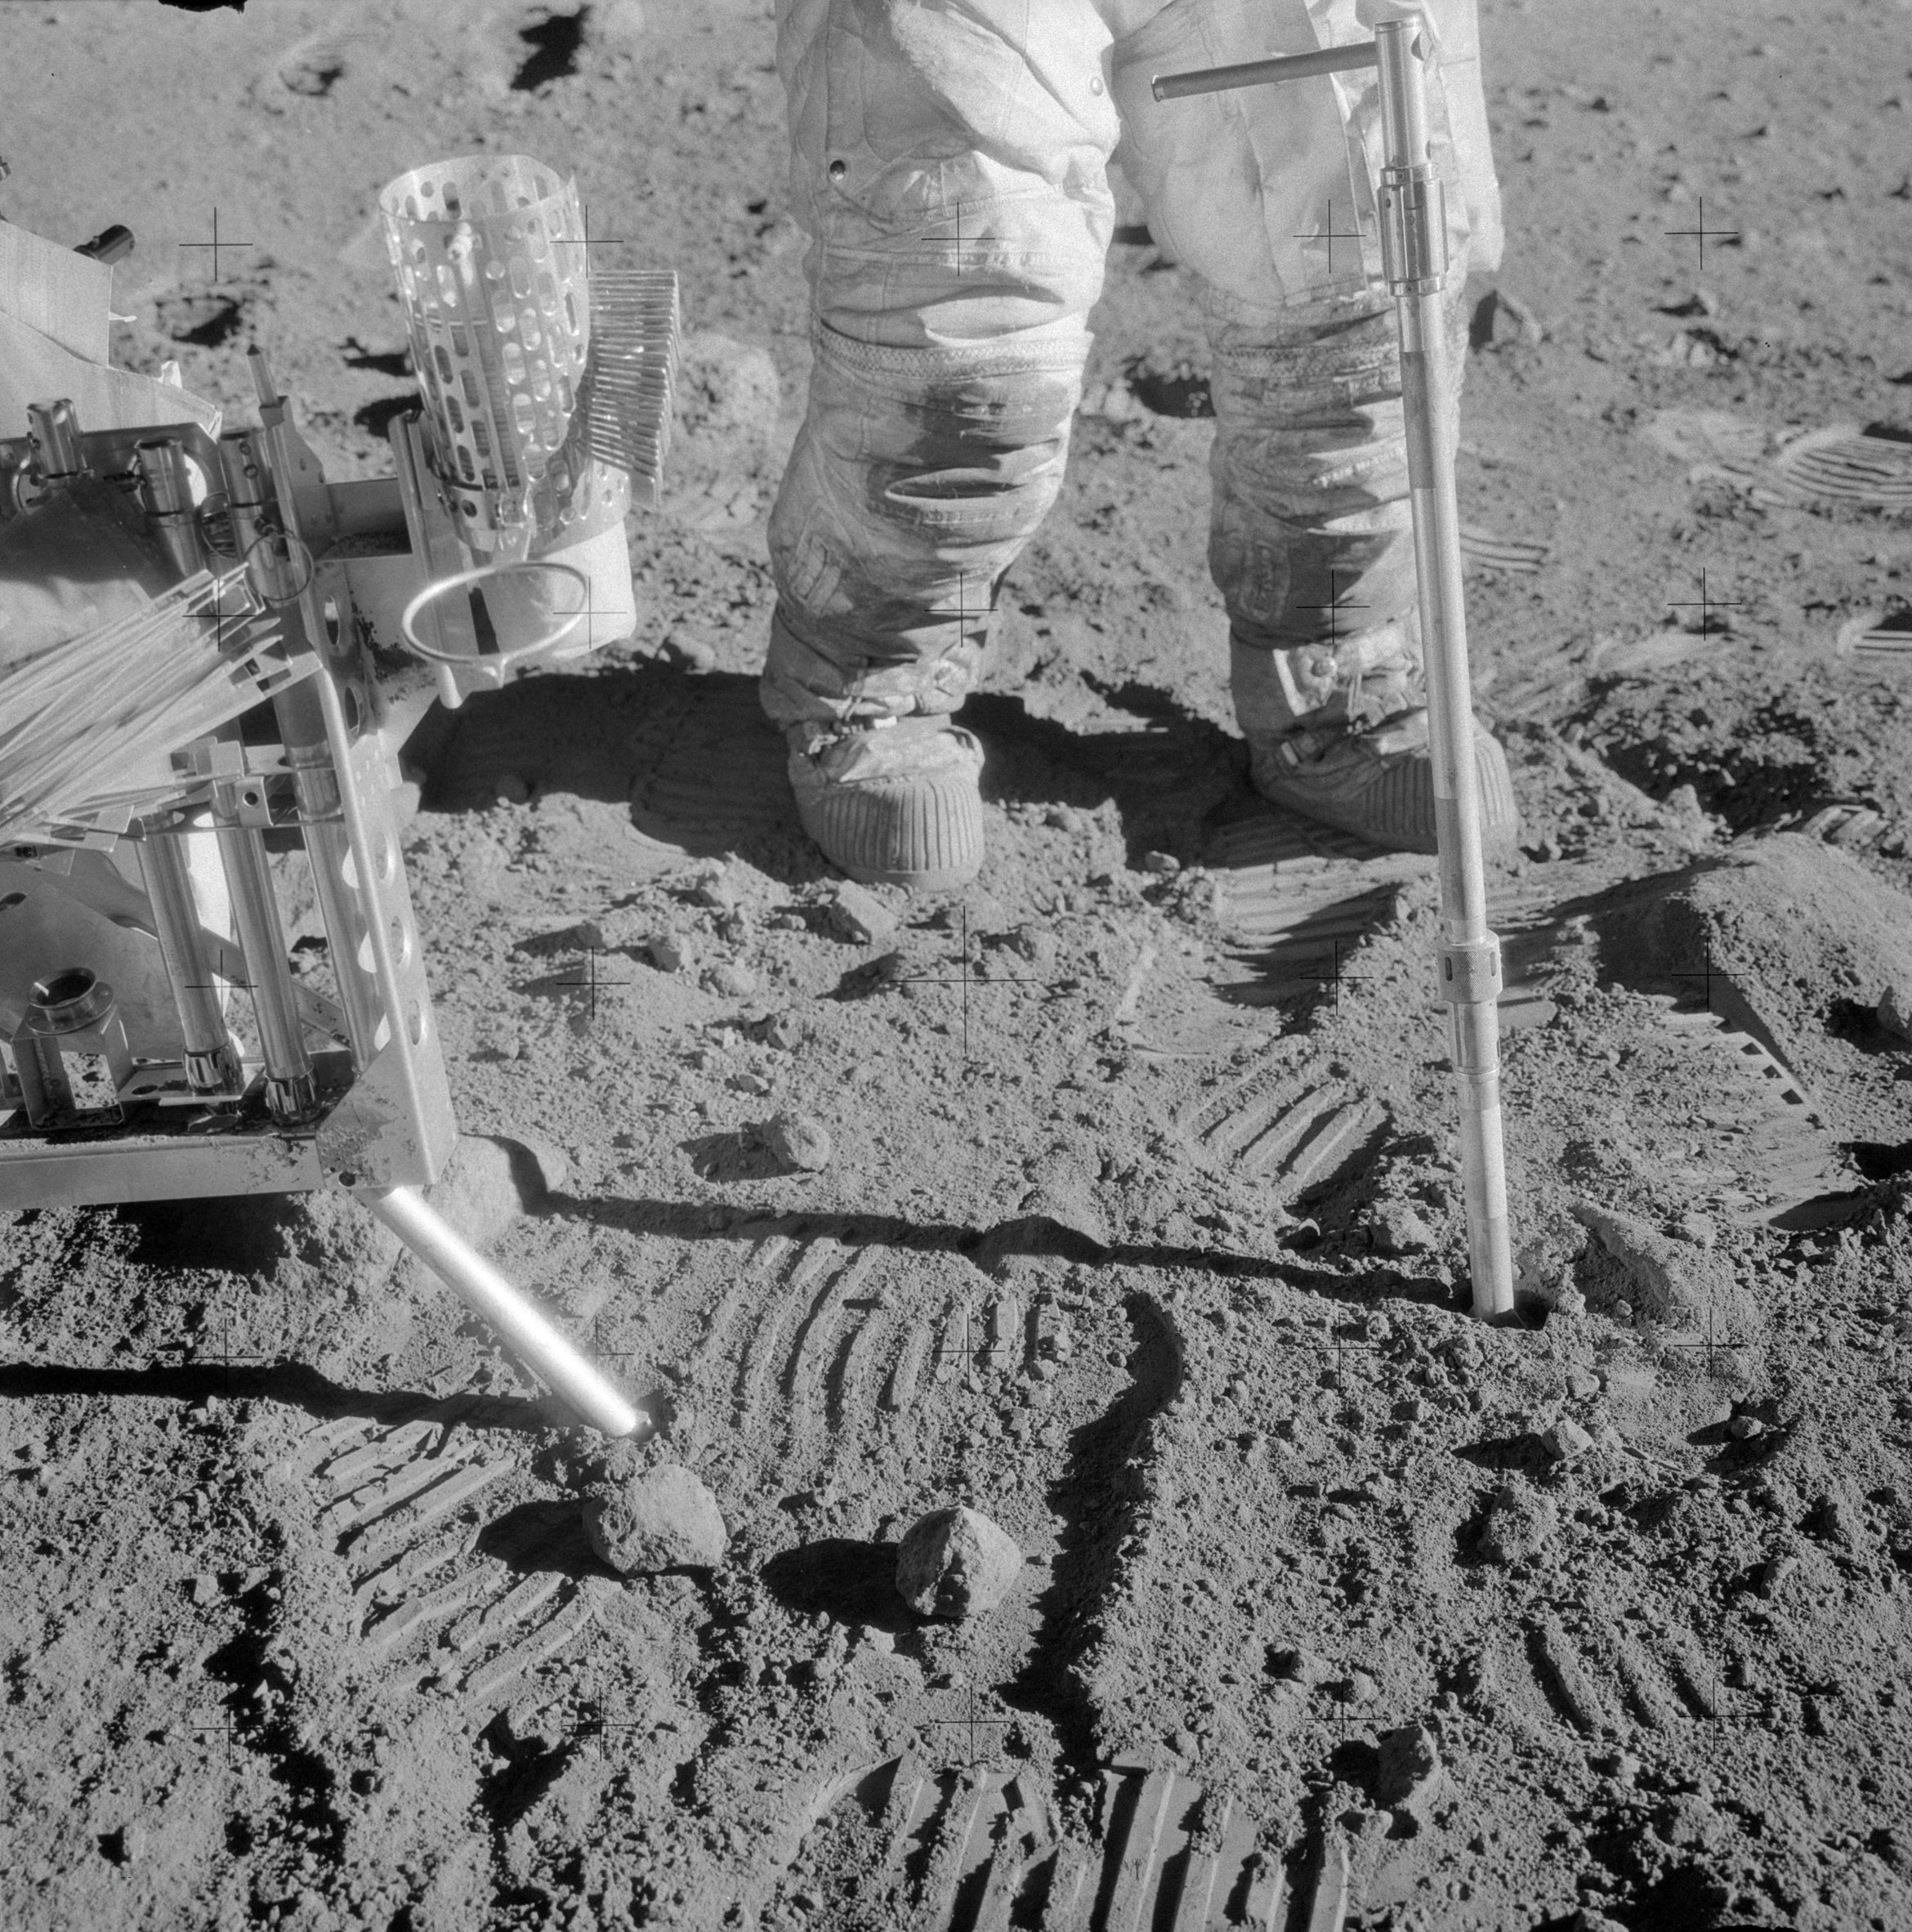 A 2-cm core tube being driven into the lunar soil at Bench Crater site by Apollo 12 astronaut Allan Bean.